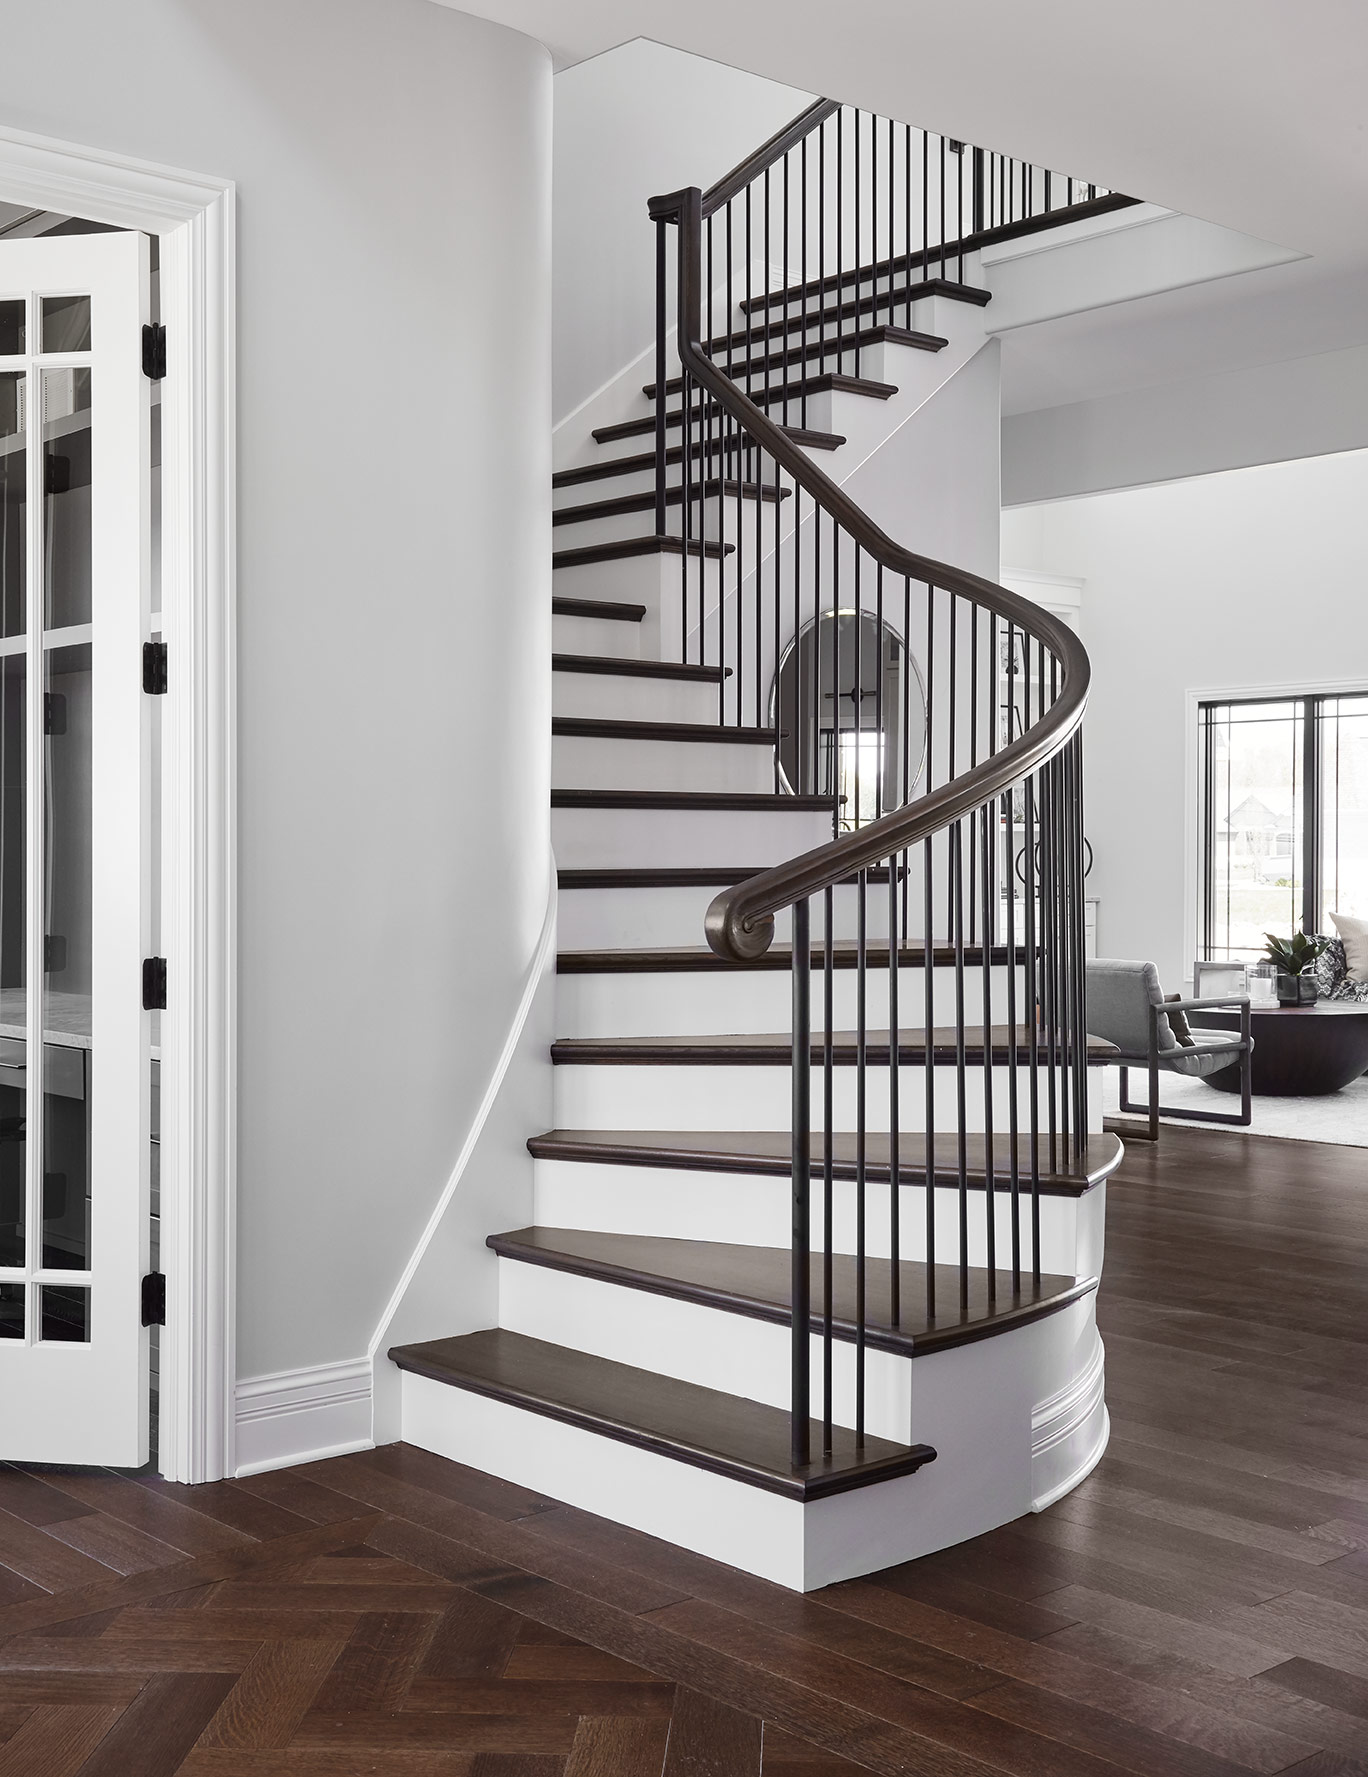 Upon entering the house, guests are greeted with a subtle herringbone texture in the floor and a gran, curving staircase.